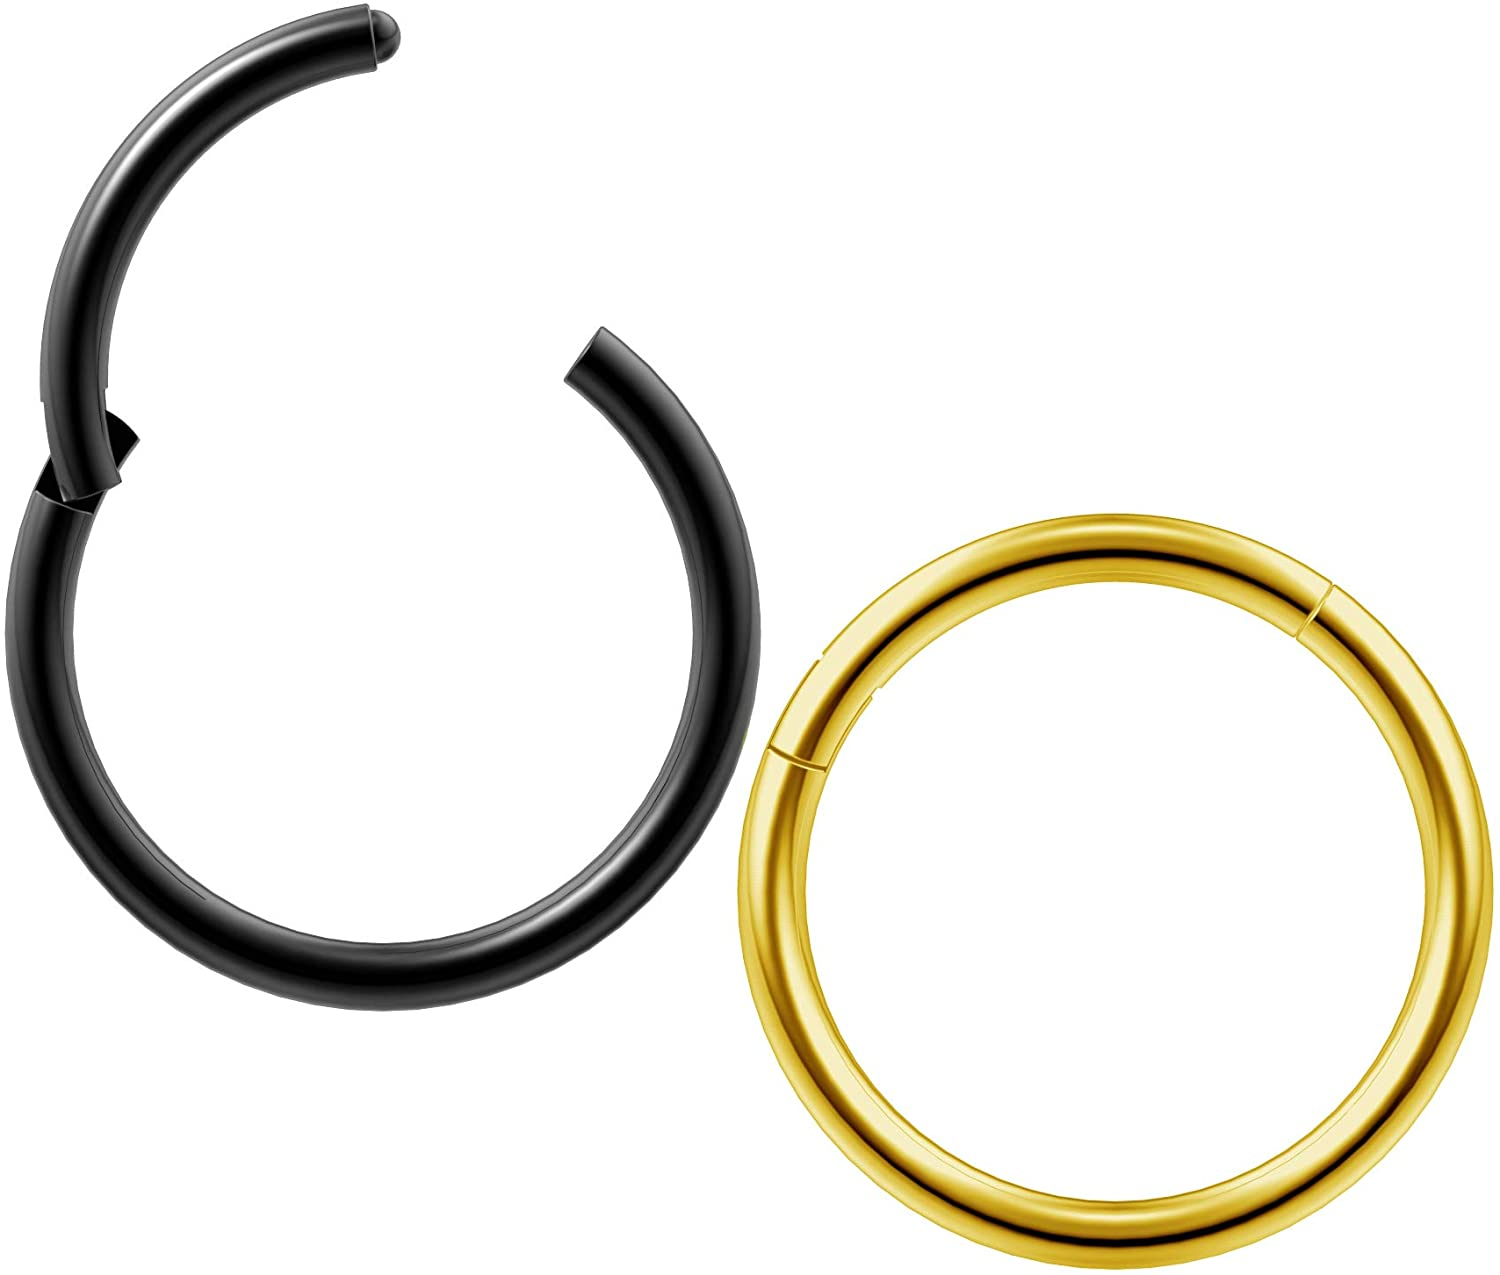 2pc 18g Clicker Nose Rings Hoop Septum Ring Ceptum Clickers Conch Piercing Jewelry 3/8 10mm